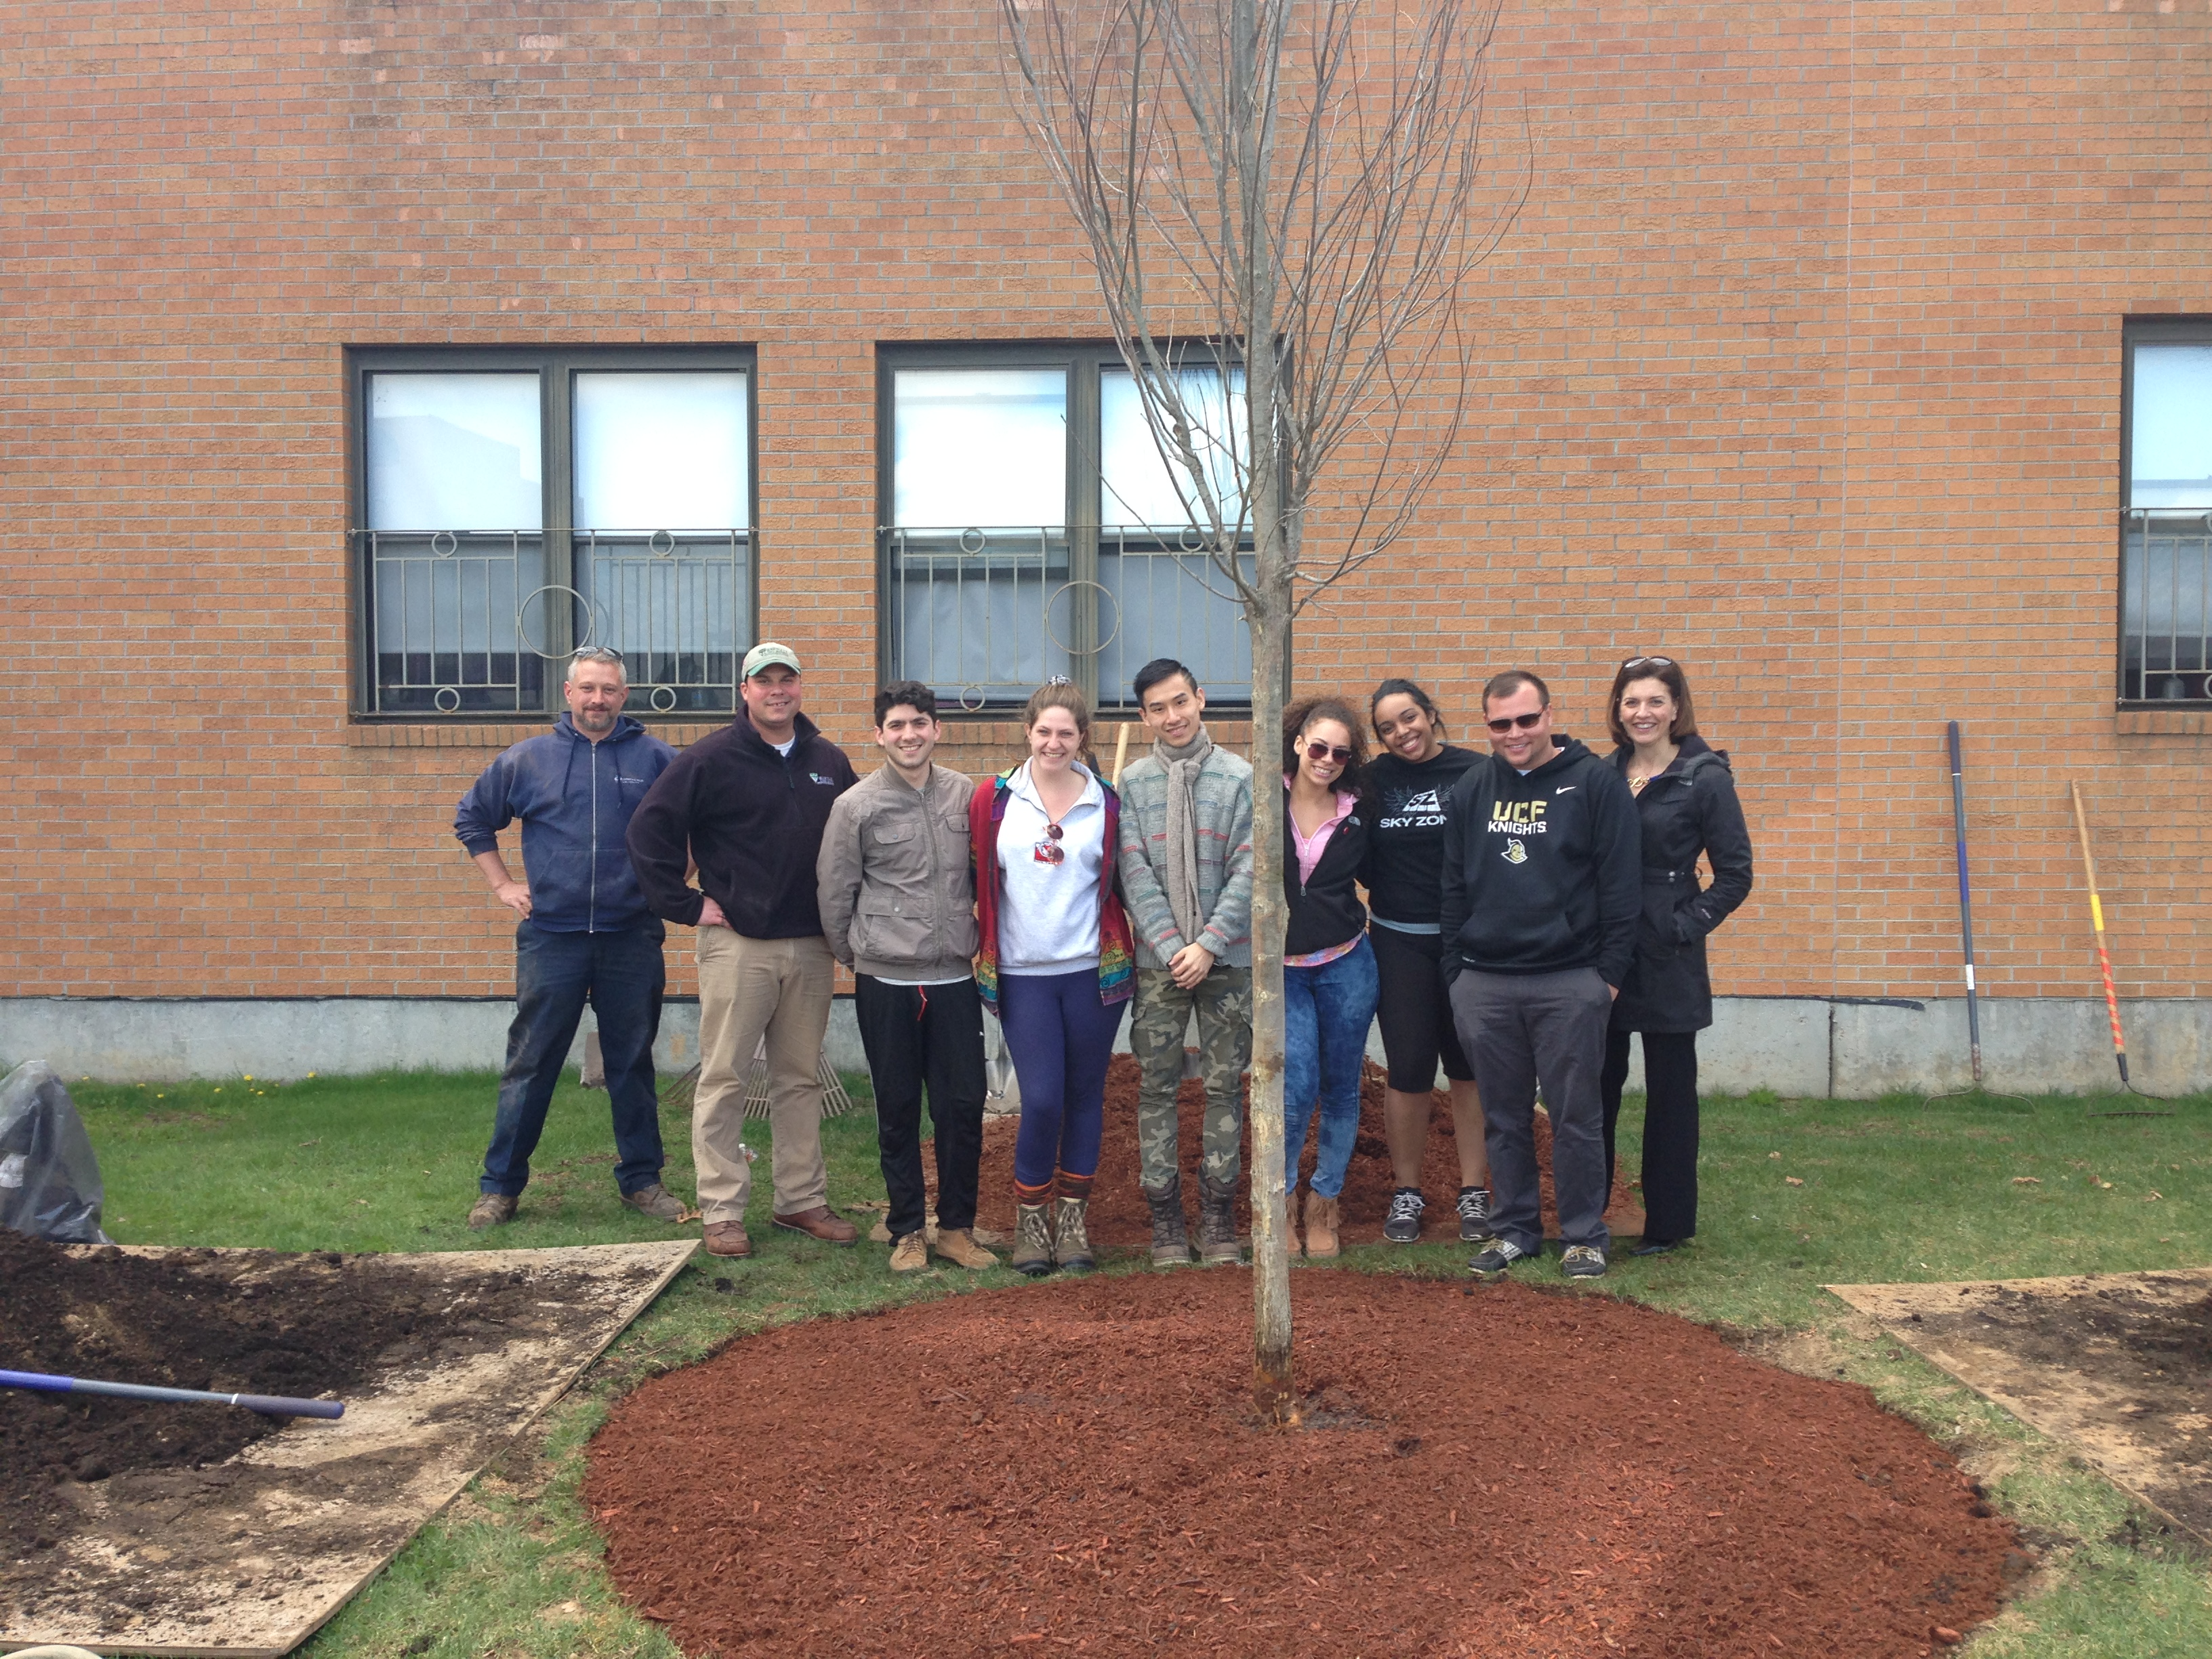 johnson and wales - Arbor Day and Earth Day 2015